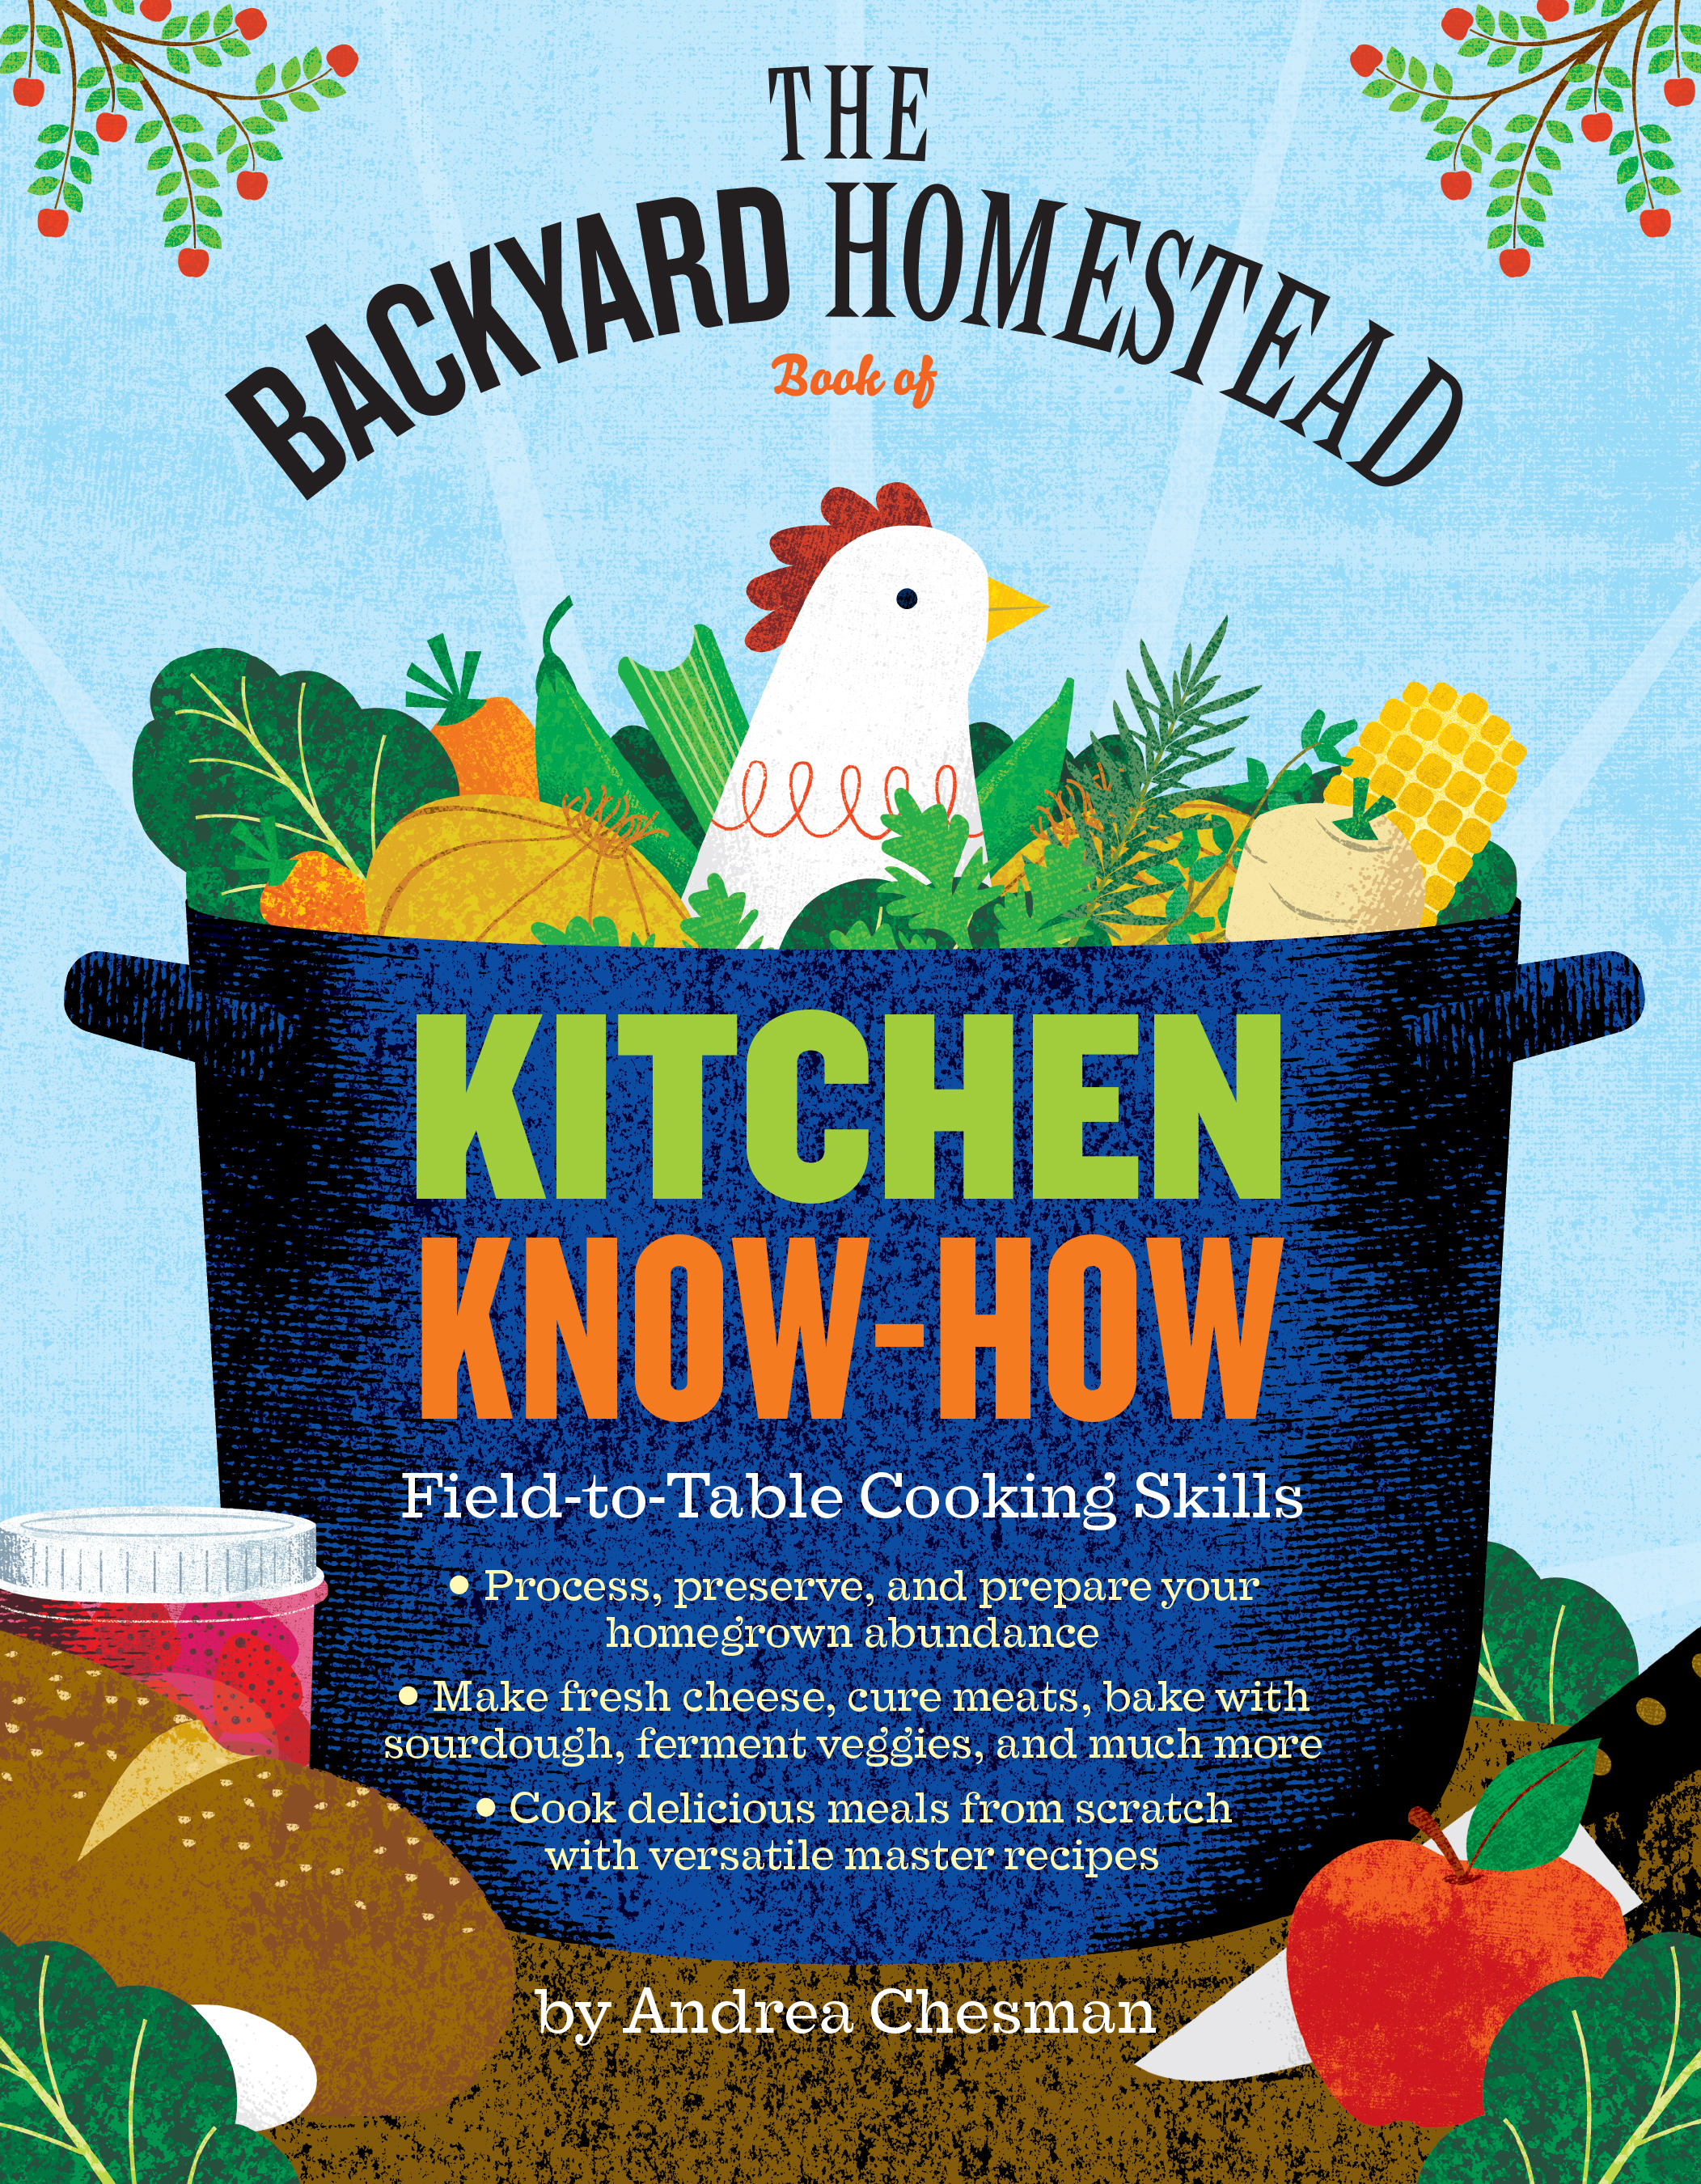 The Backyard Homestead Book of Kitchen Know-How Field-to-Table Cooking Skills - Andrea Chesman